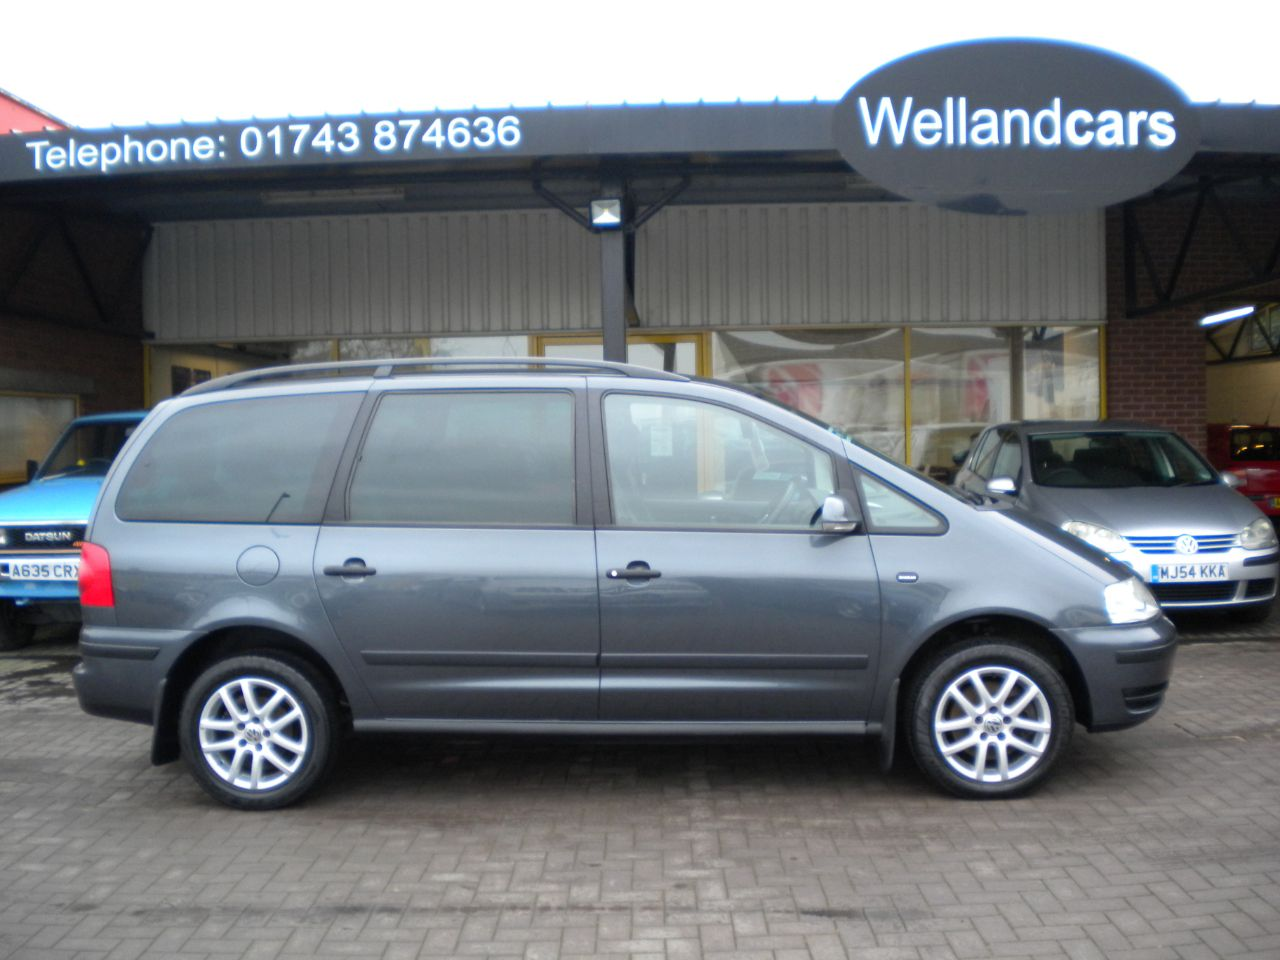 Volkswagen Sharan 2.0 TDI SE 140 5dr 6 Speed Manual, F/S/H,Full Leather 7 Seater, Climate Control. MPV Diesel Grey at Welland Cars Shrewsbury